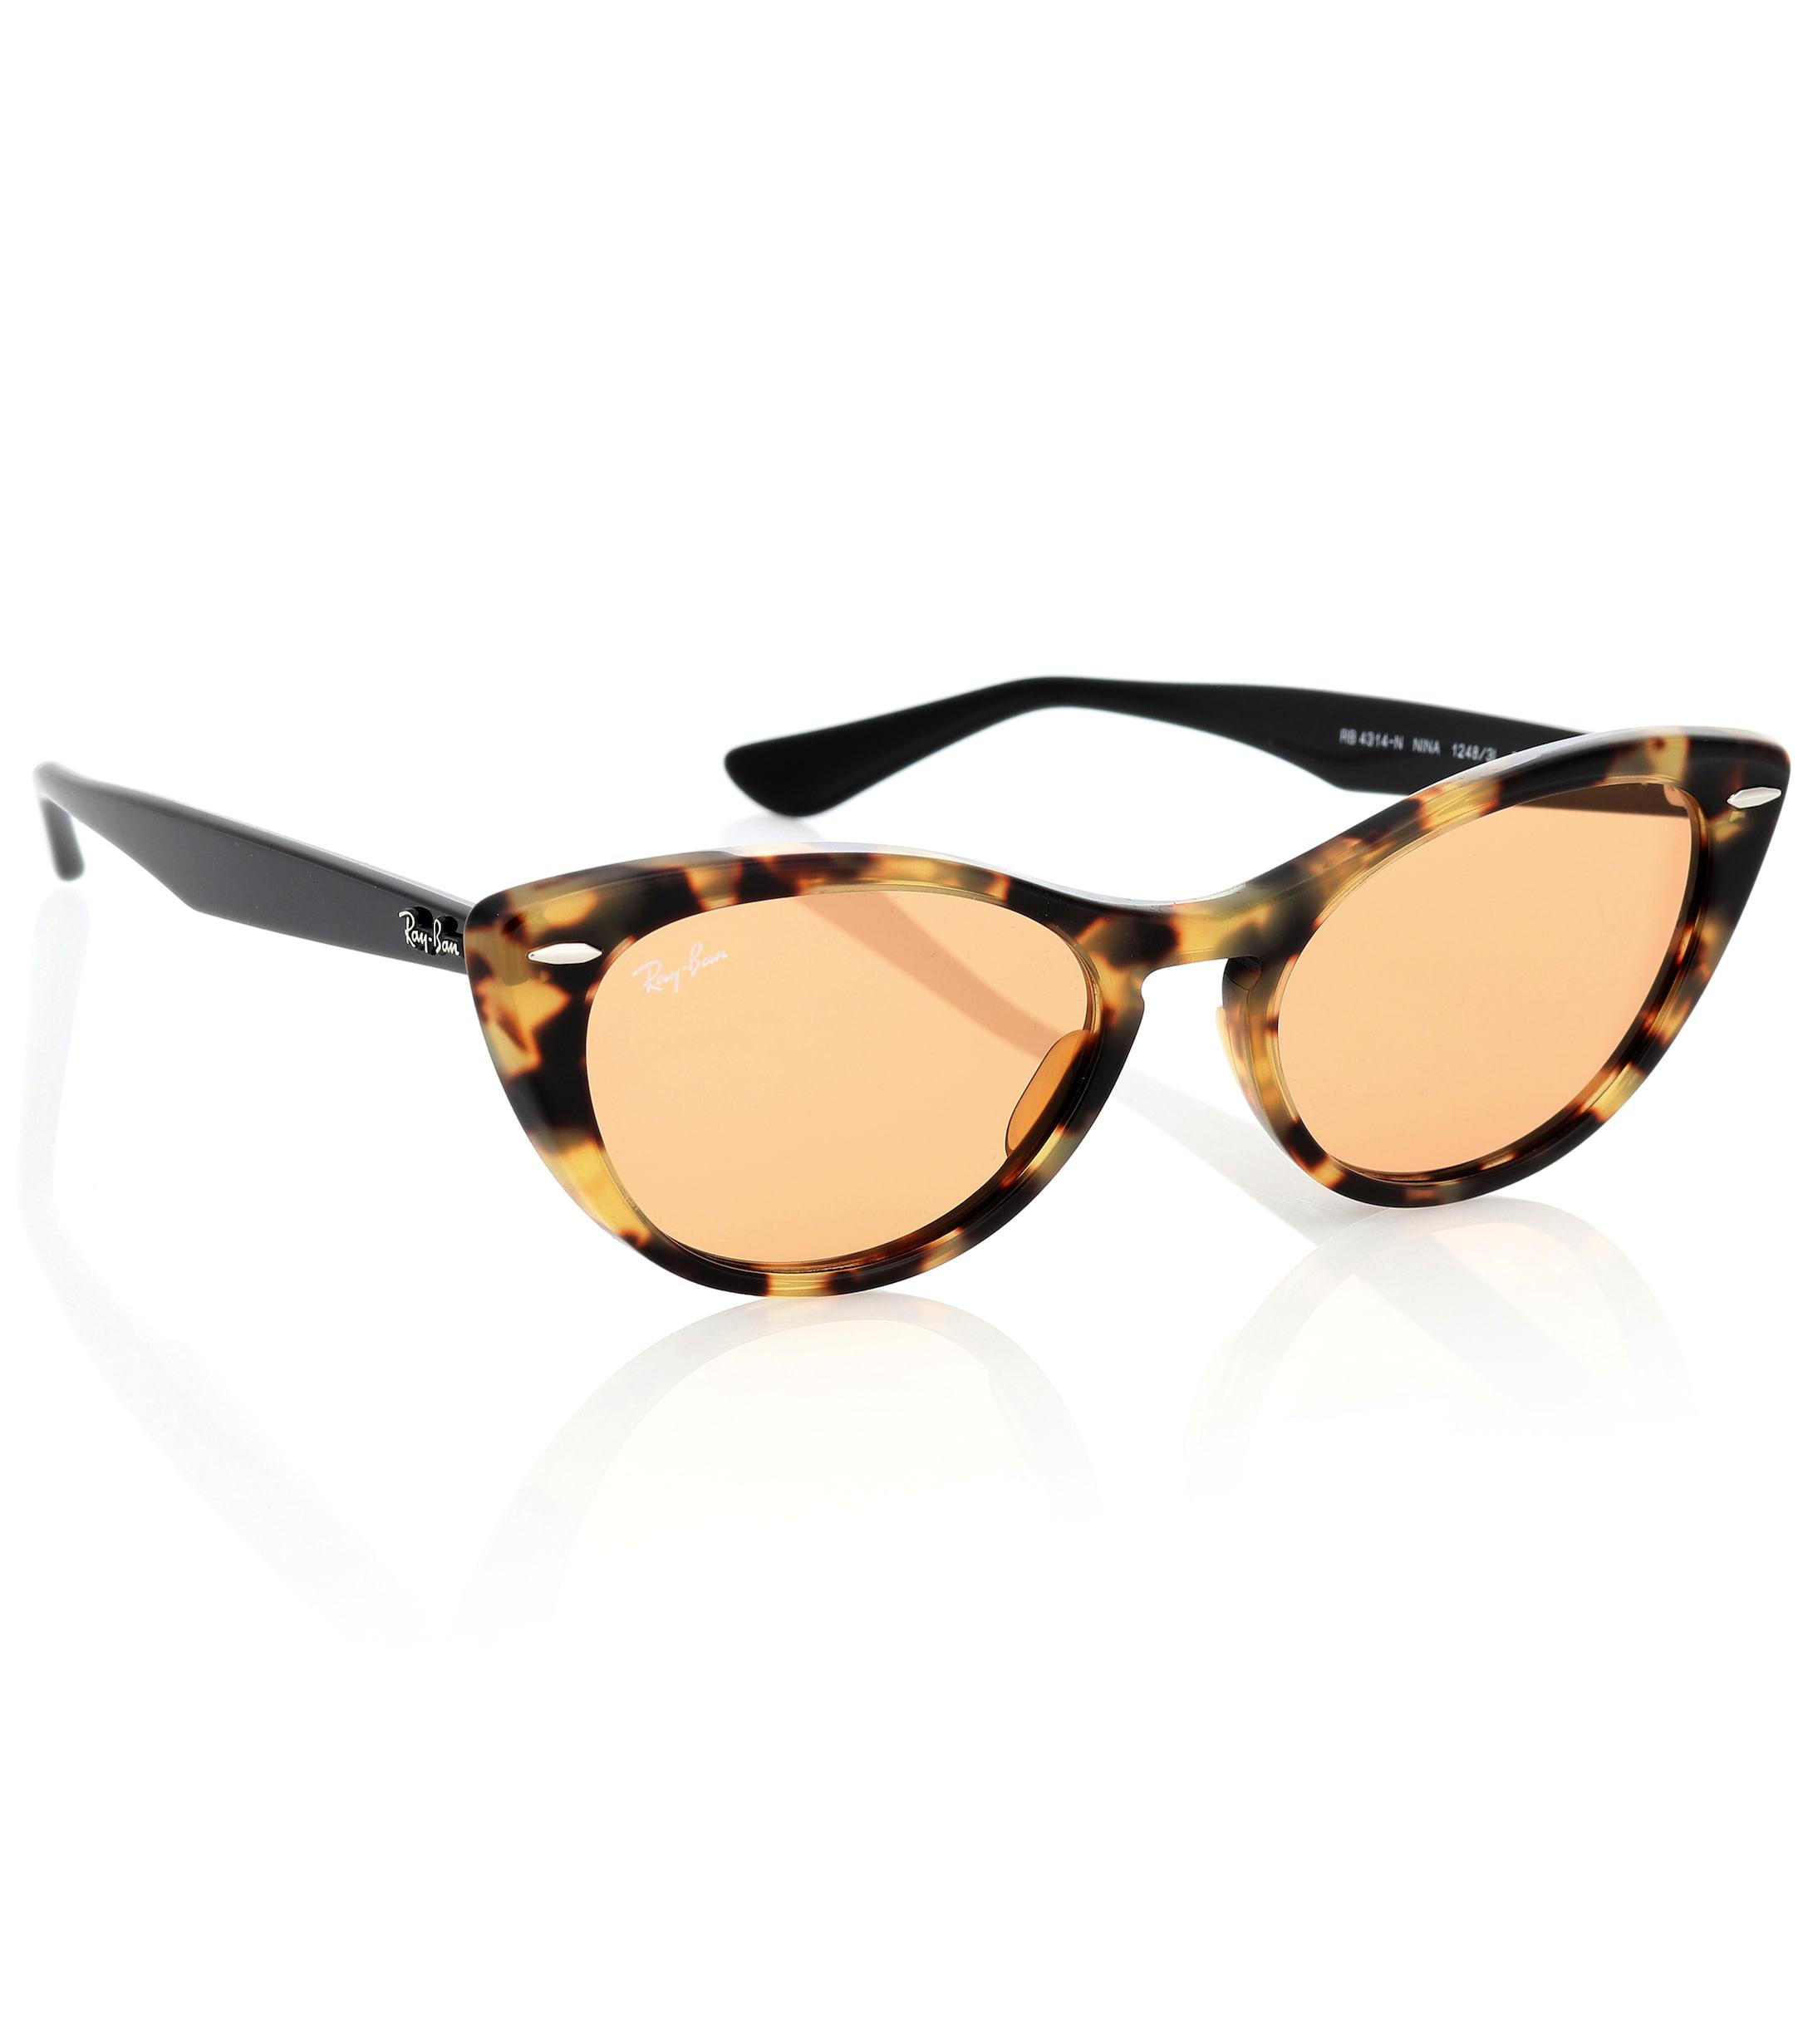 e02afe1f8a45 Ray-Ban Nina X Cat-eye Acetate Sunglasses in Brown - Lyst